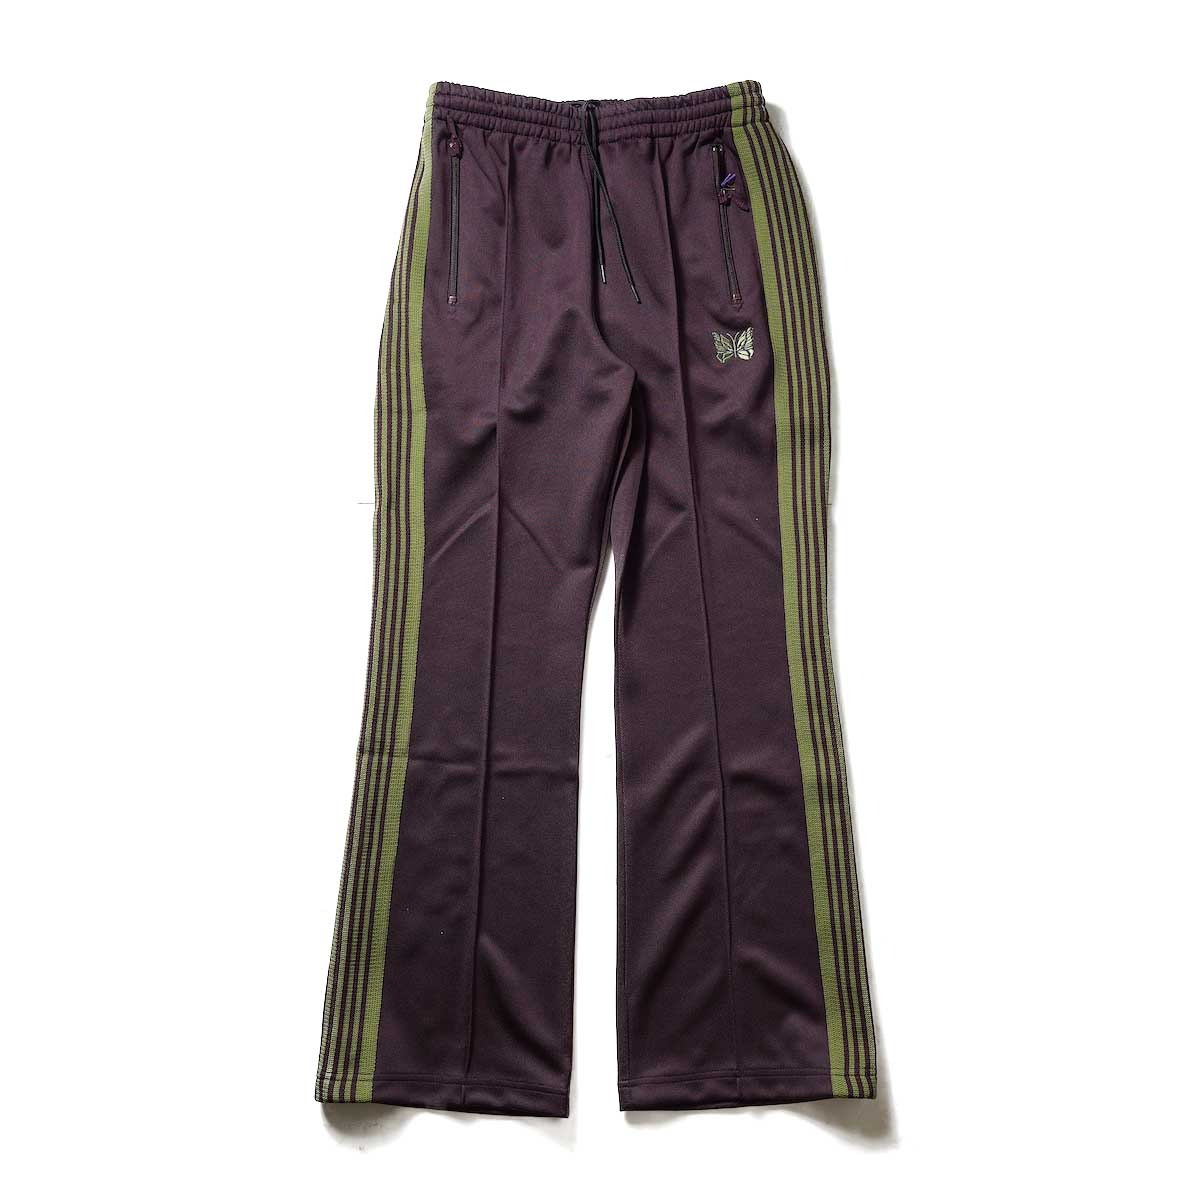 Needles / Boot-Cut Track Pant -Poly Smooth (Maroon)